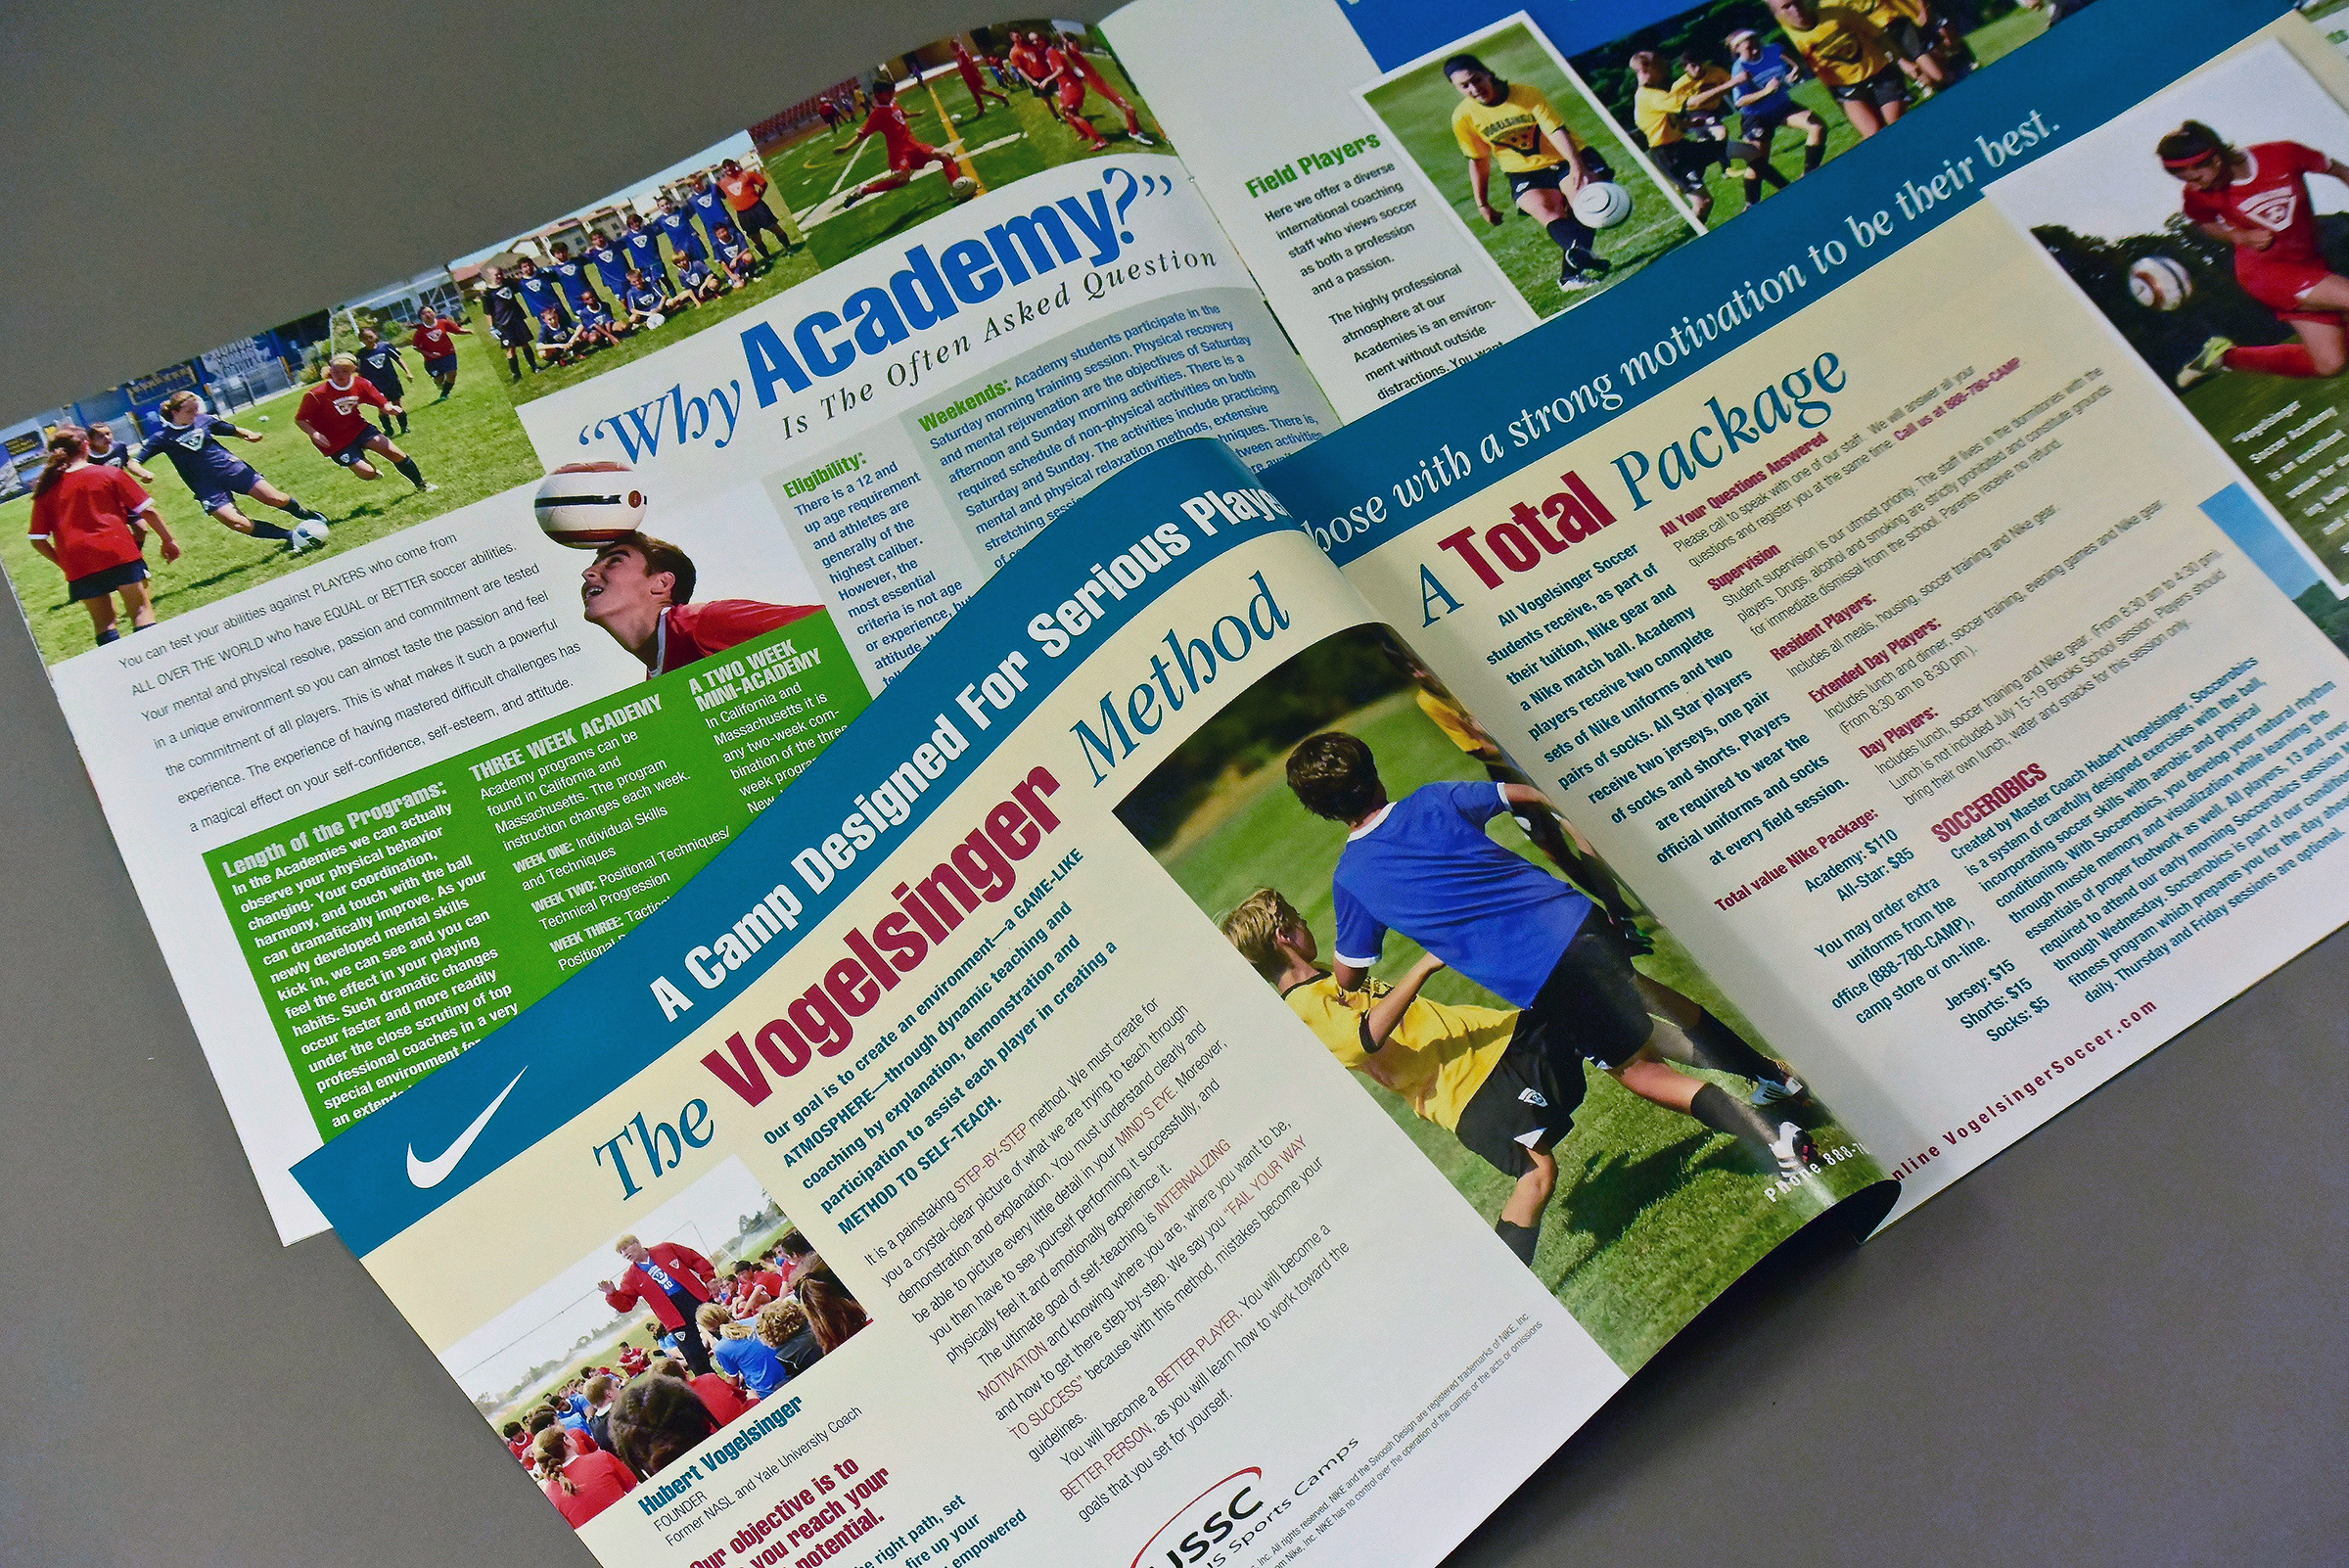 Summer Soccer Camp Brochure (interior pages)